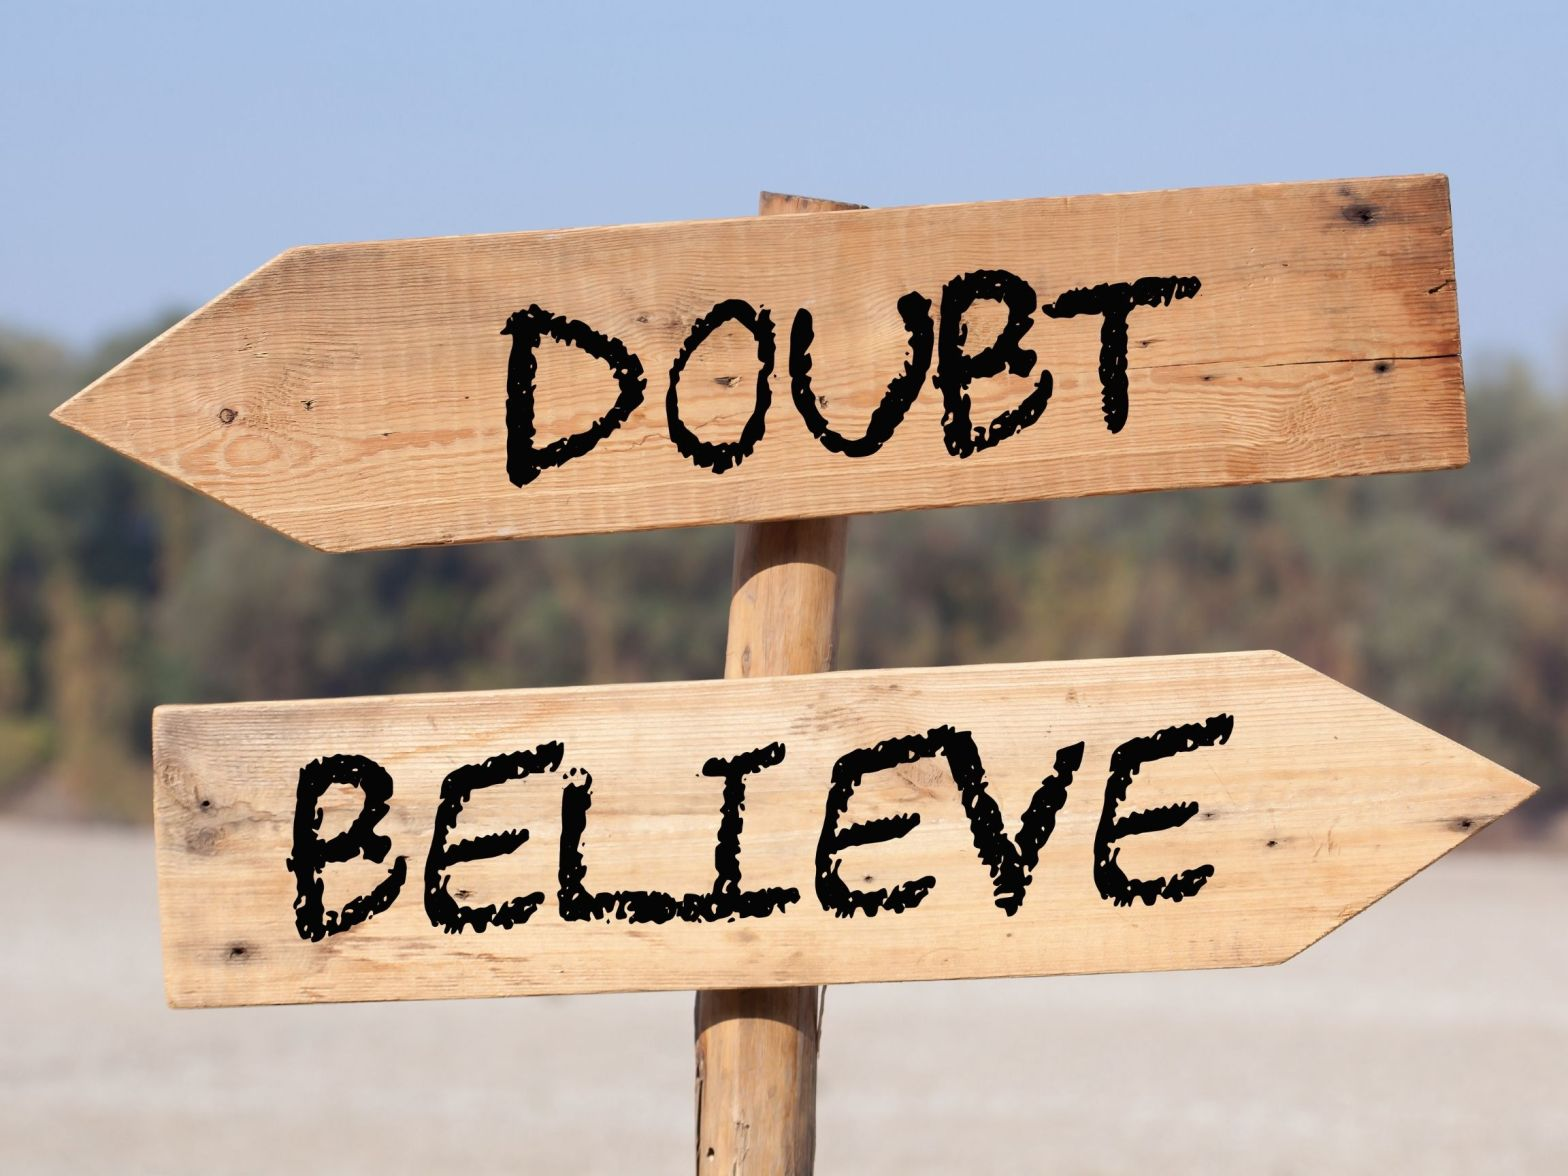 How To Overcome Limiting Beliefs?